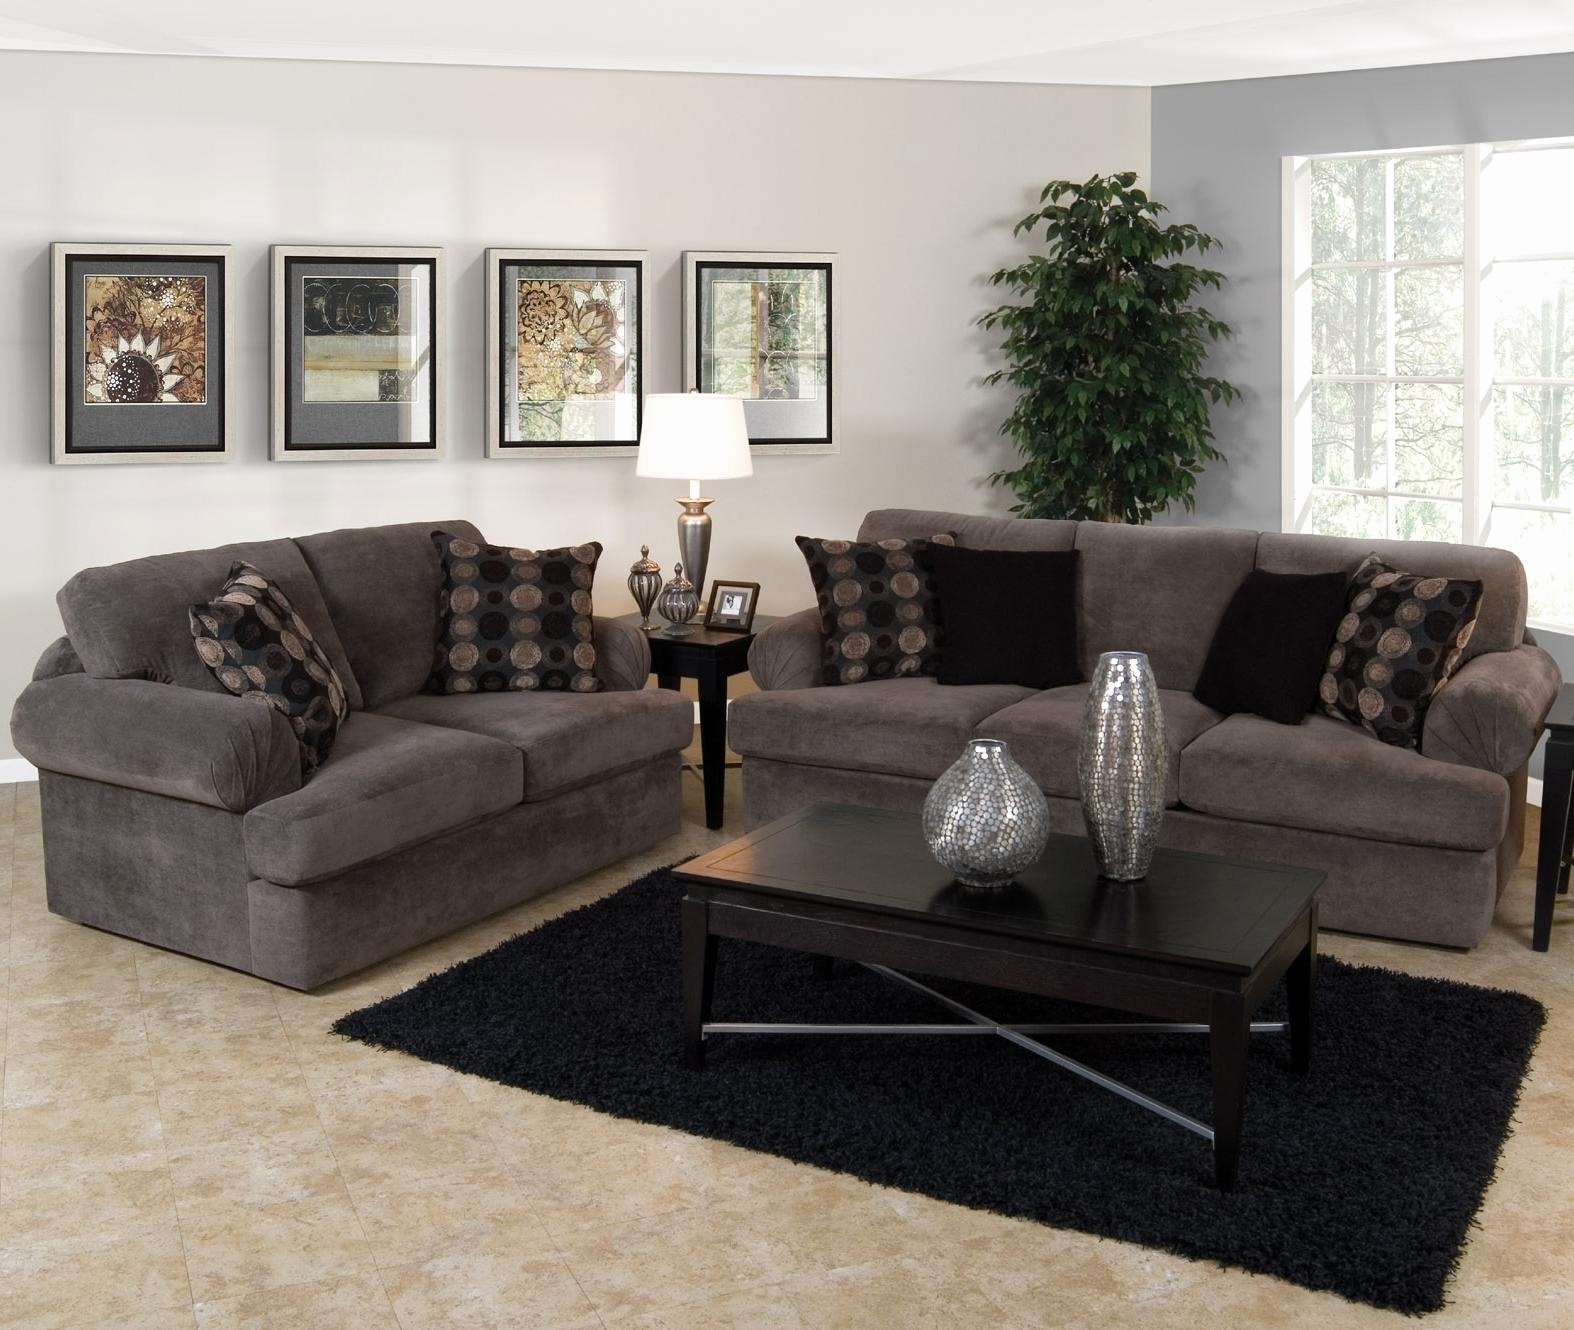 Elegant England Sectional Sofa 2018 – Couches Ideas With Nova Scotia Sectional Sofas (Photo 6 of 10)